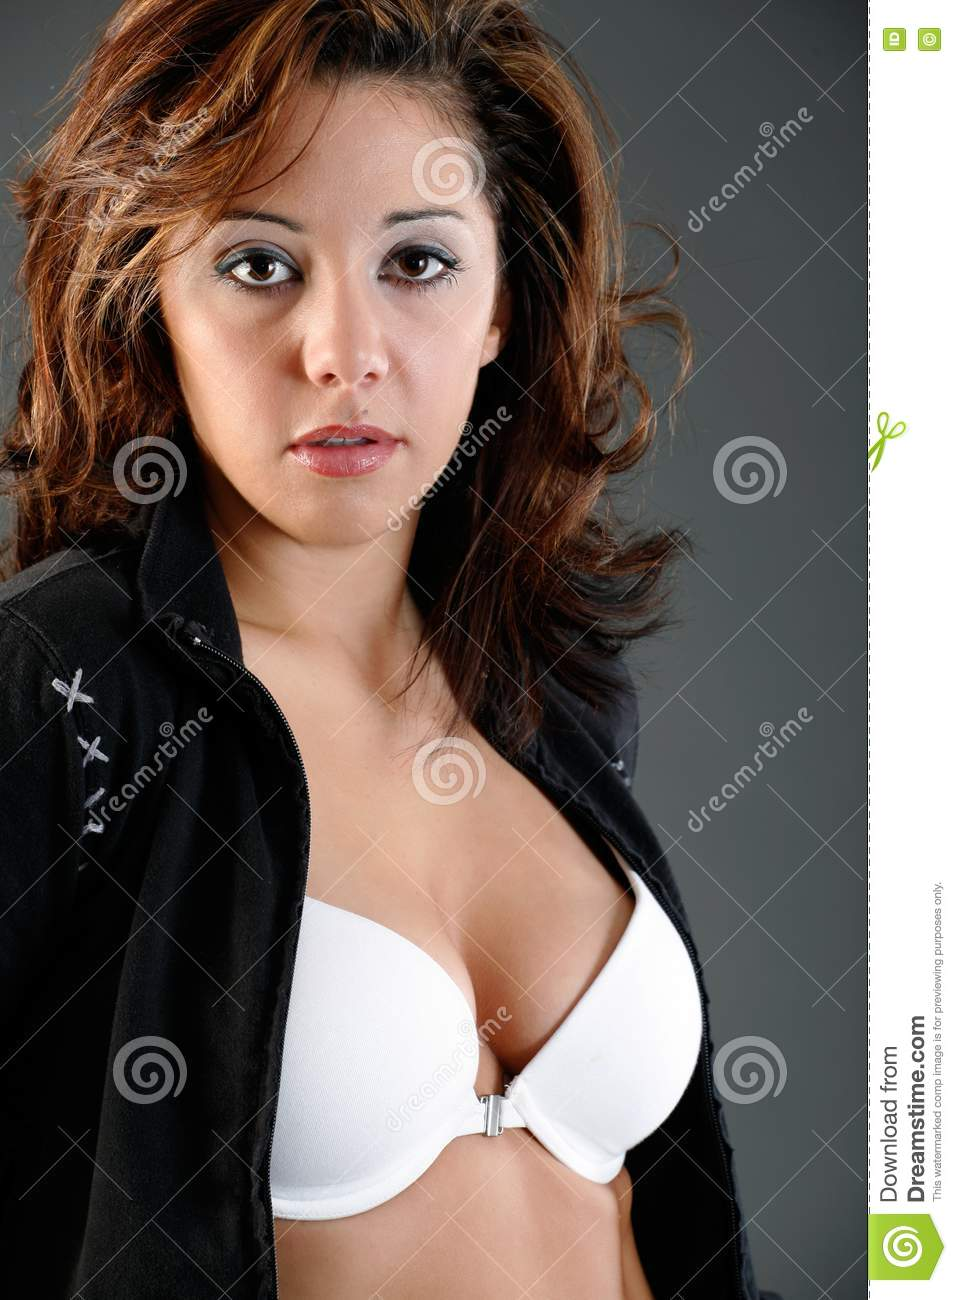 Unzipped Jacket Stock Photo Image Of Brunette Hairstyle